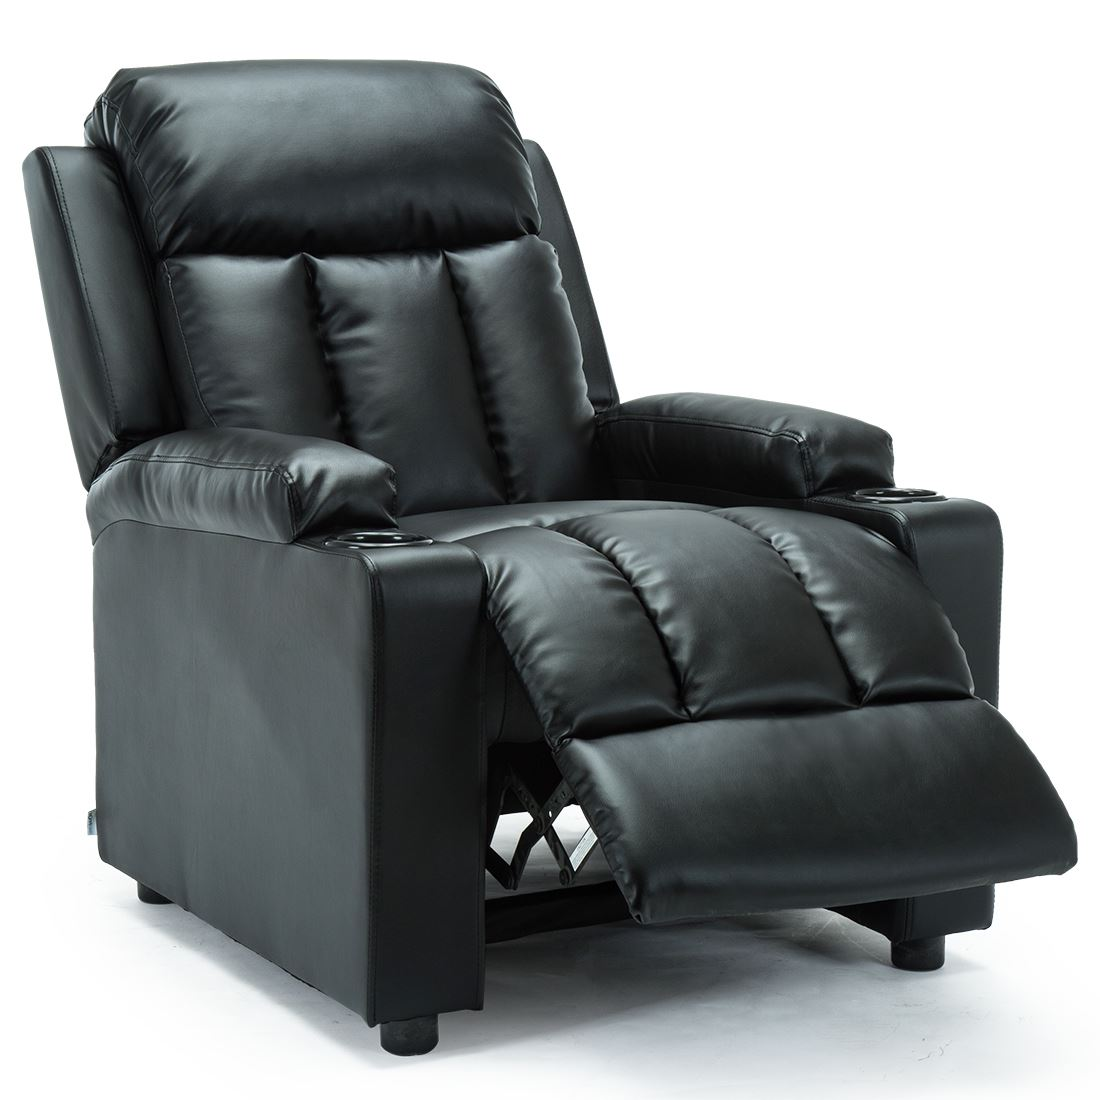 STUDIO-LEATHER-RECLINER-w-DRINK-HOLDERS-ARMCHAIR-SOFA-CHAIR-CINEMA-GAMING thumbnail 5